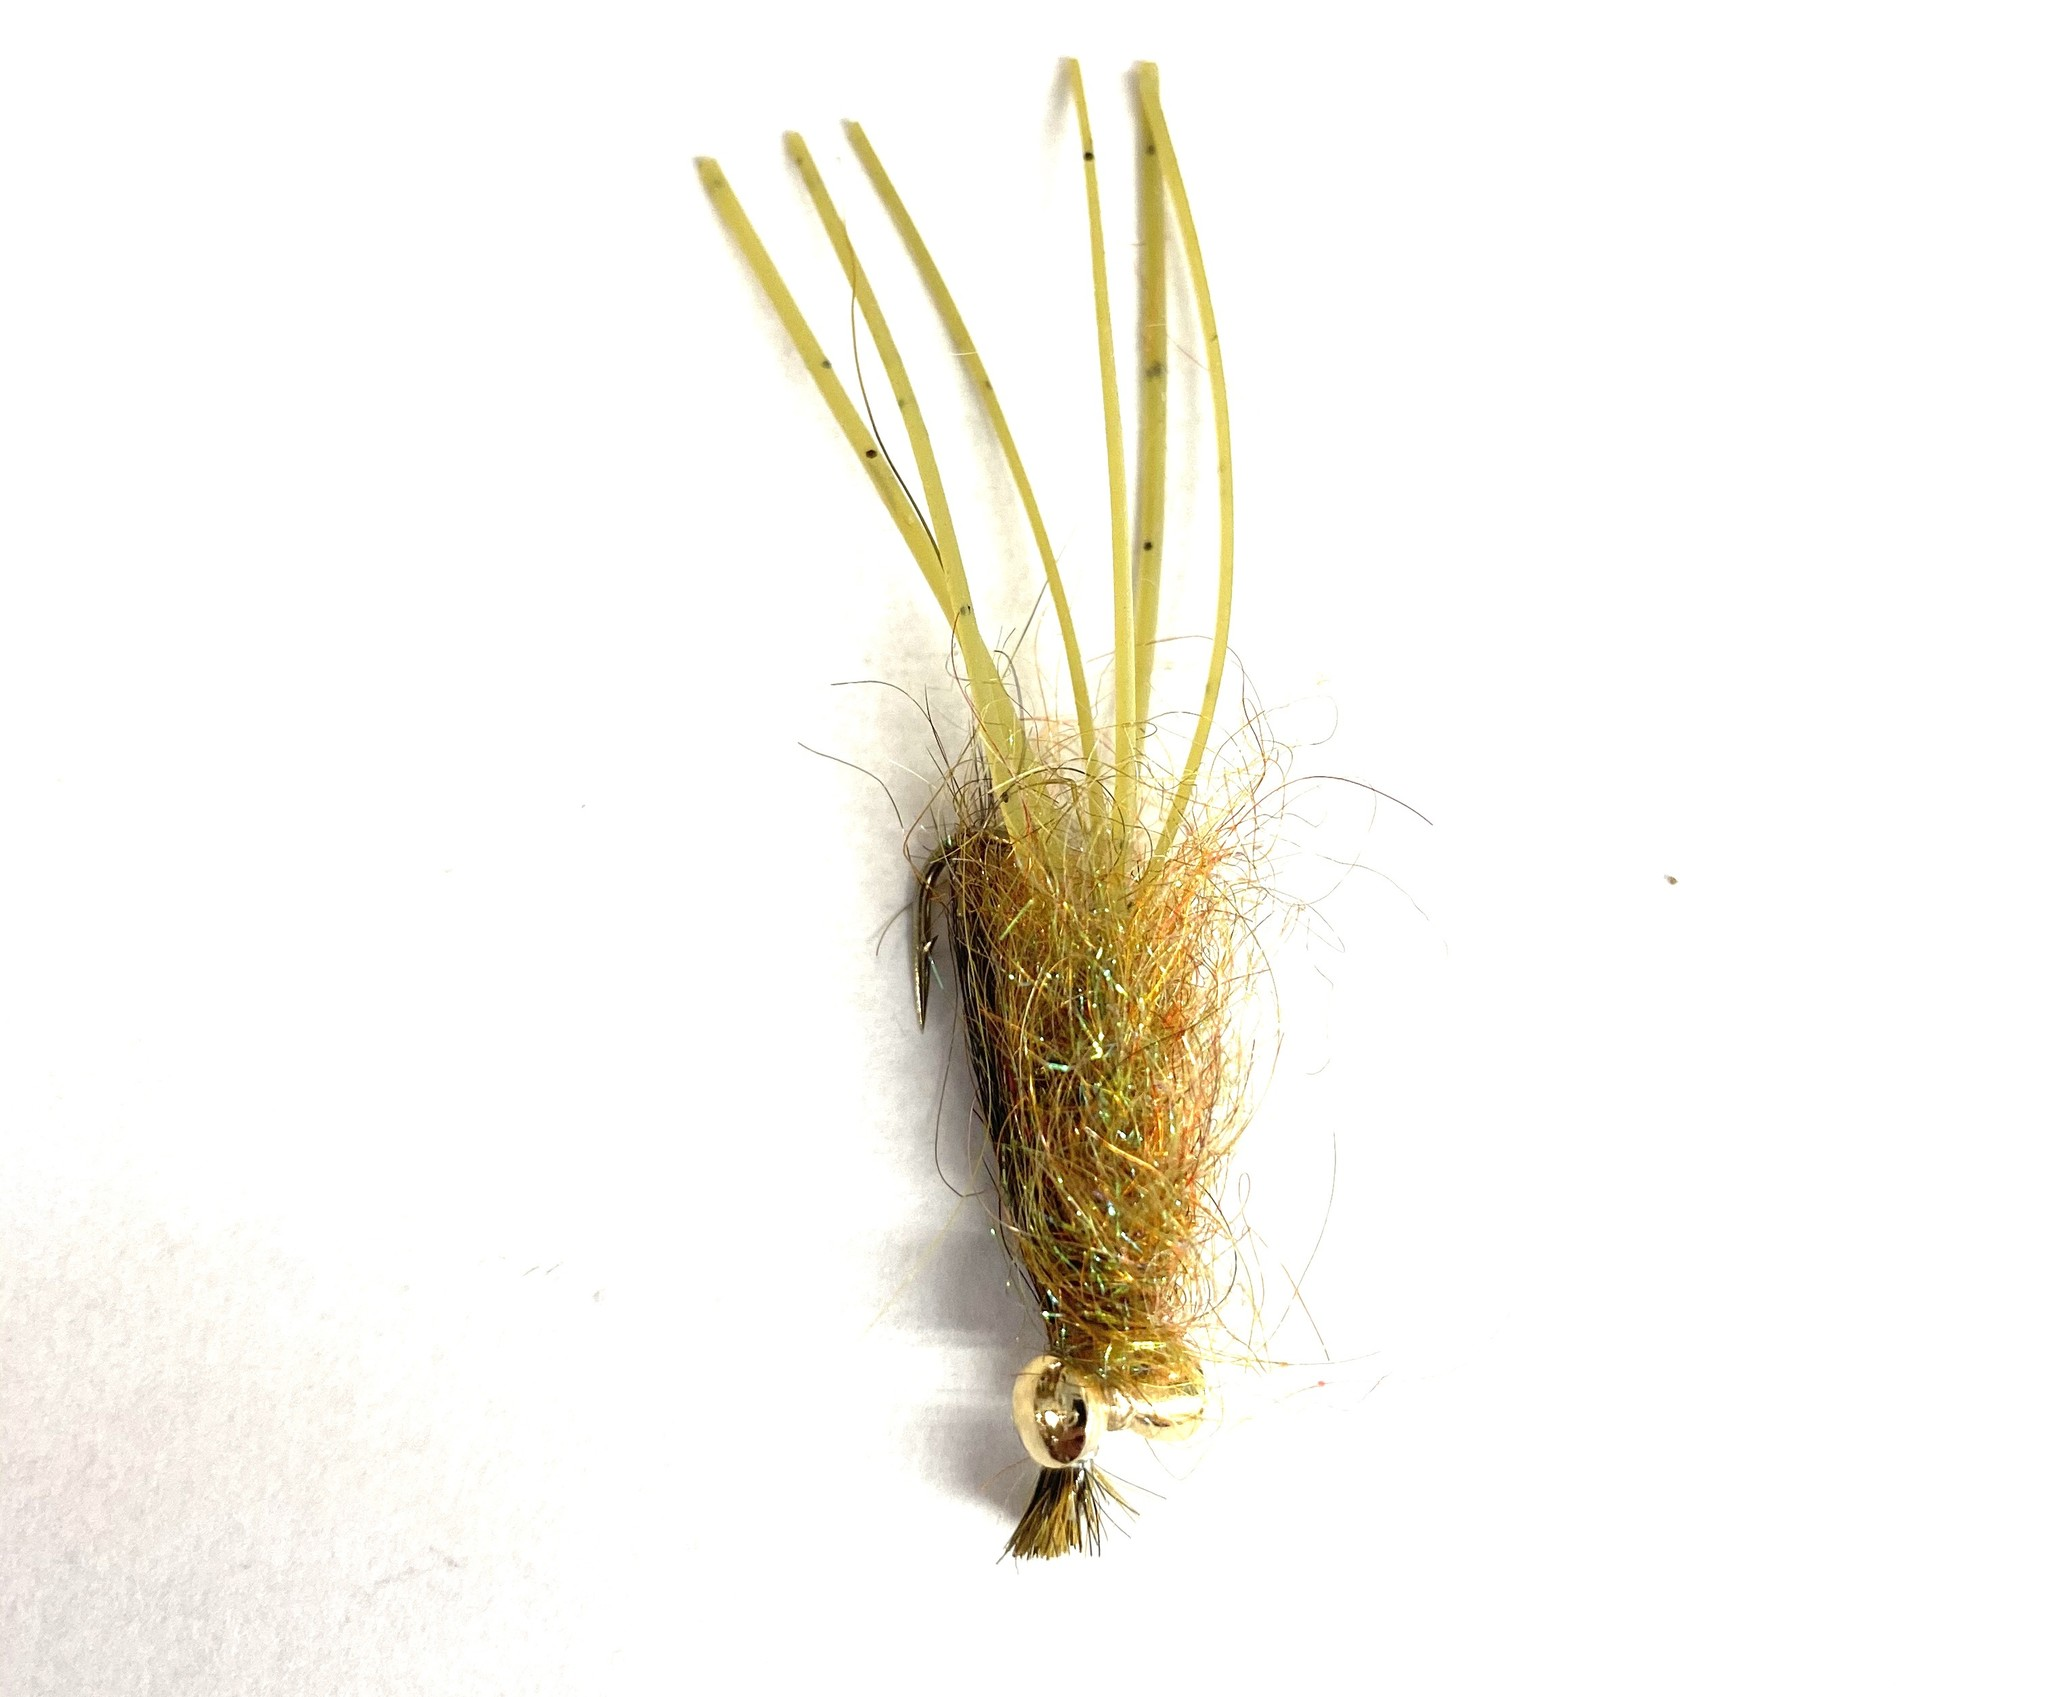 Solitude Fly Company Crazy Dad Olive #8